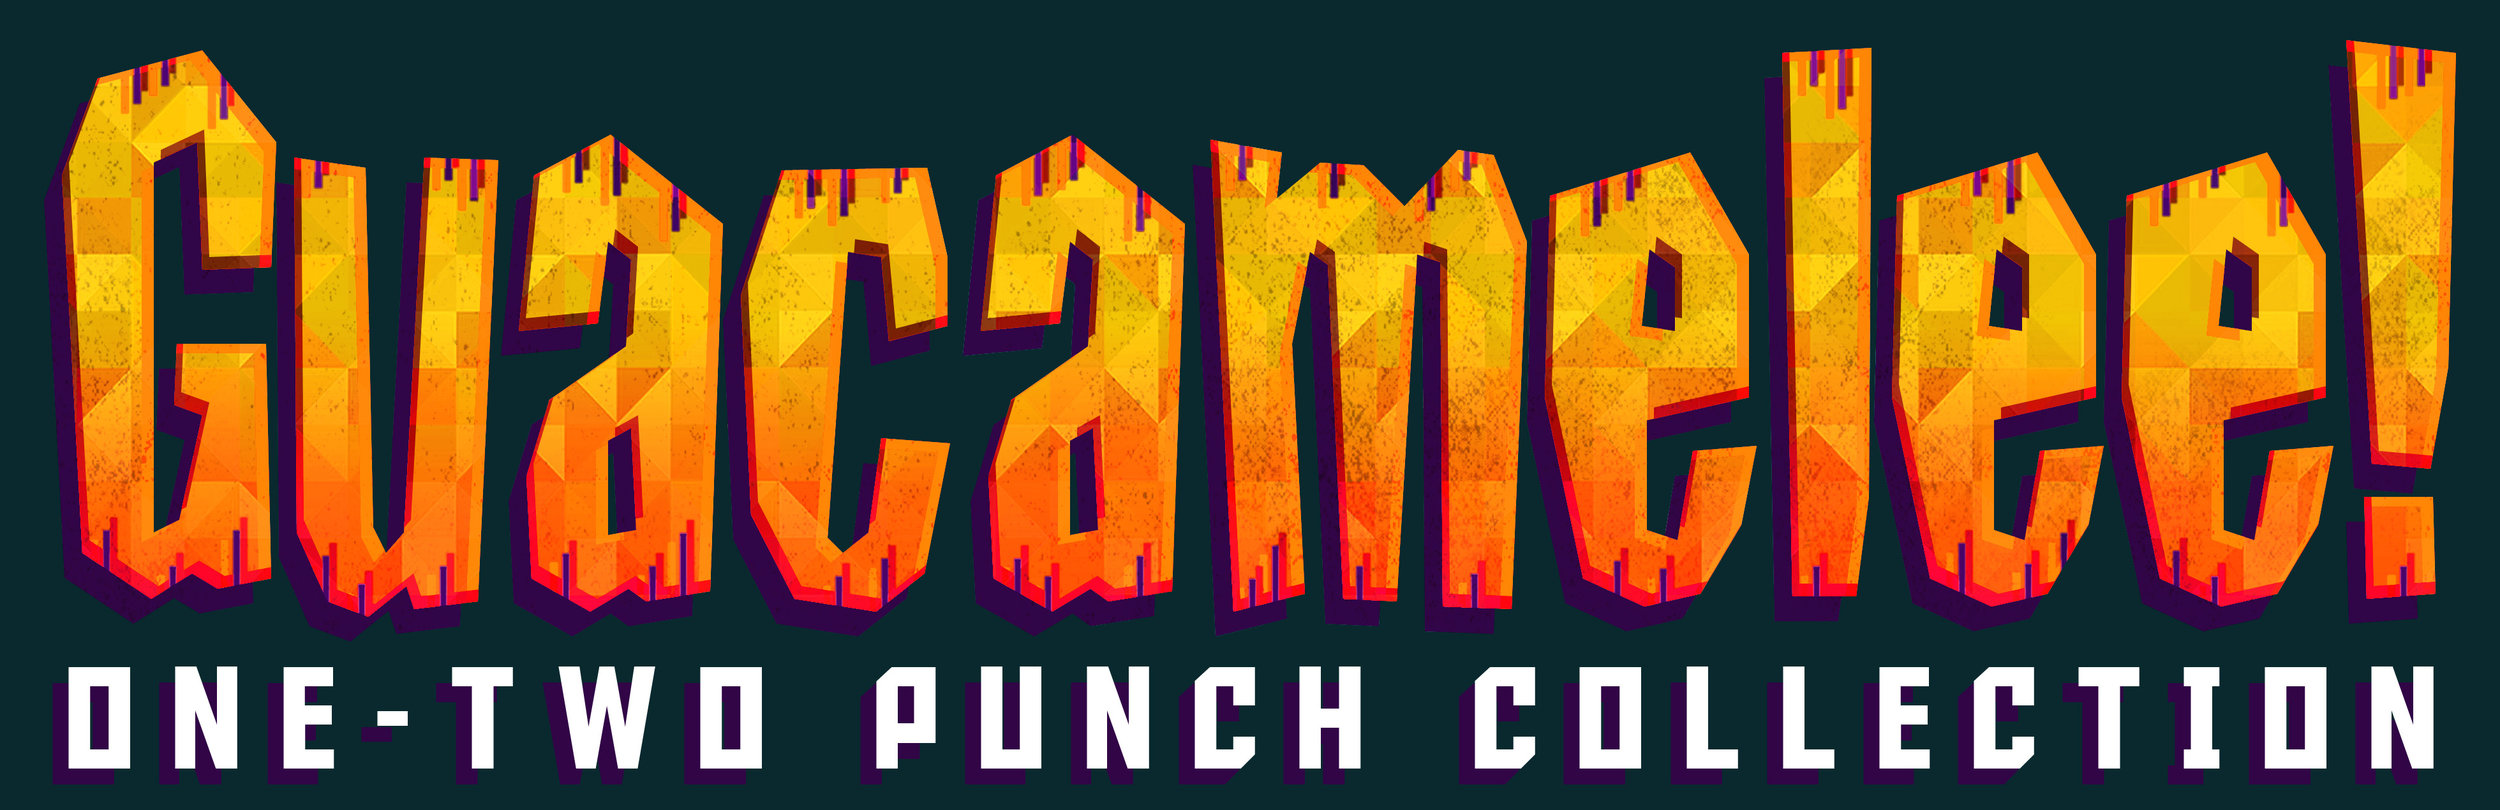 Guacamelee2_One_Two_Punch_Collection_LOGO.jpg